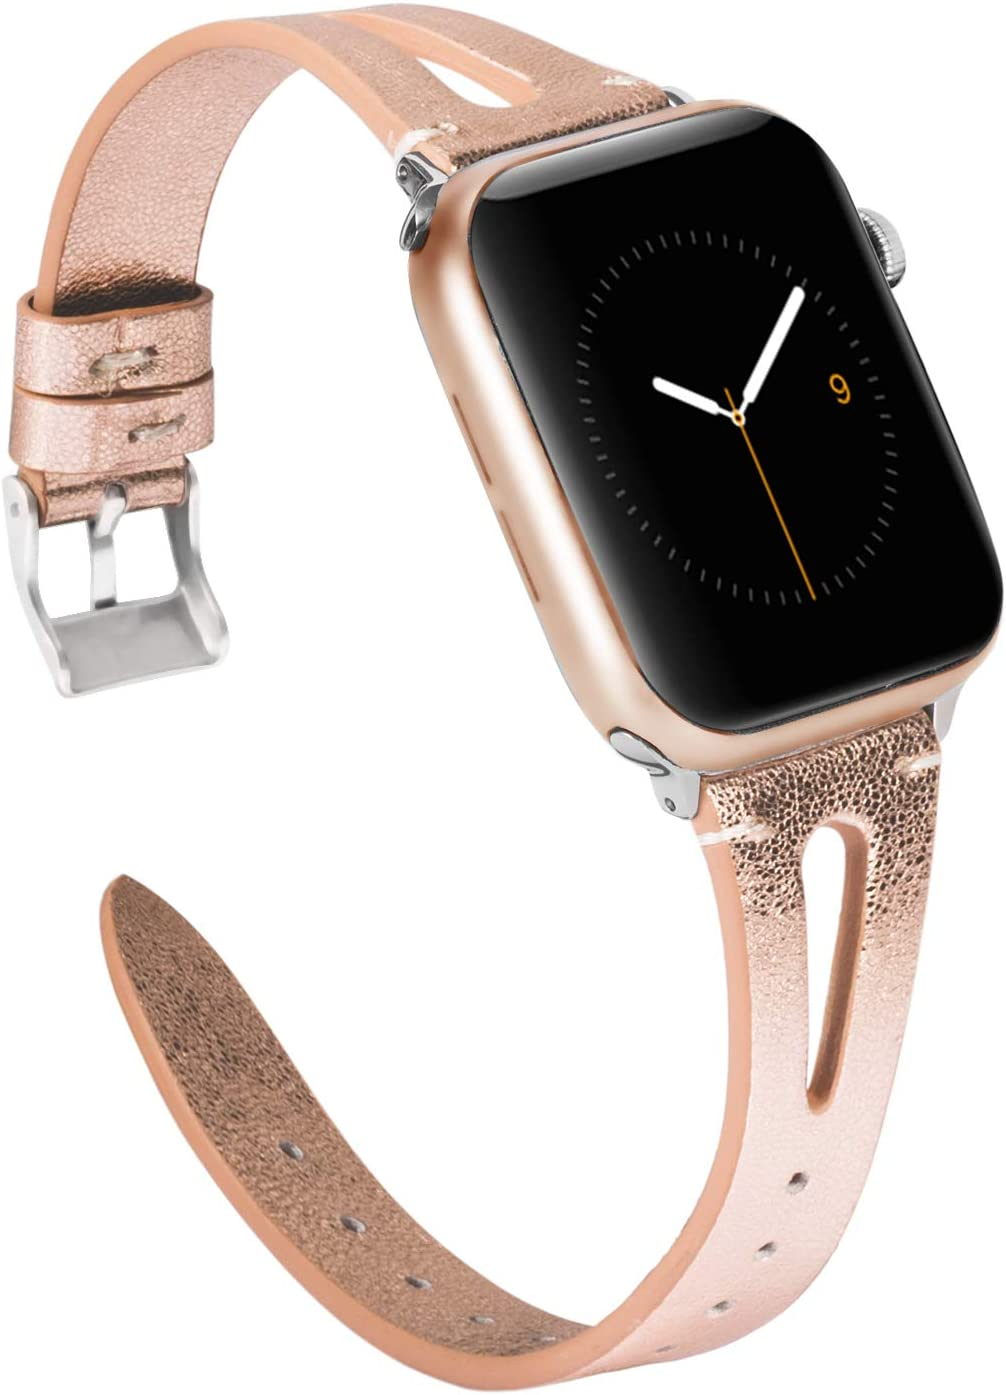 Wearlizer Rose Gold Leather Compatible with Apple Watch Bands 38mm 40mm for iWatch Womens Mens Top Grain Leather Strap Cool Triangle Hole Wristband Replacement (Silver Buckle) Series 5 4 3 2 1 Sport